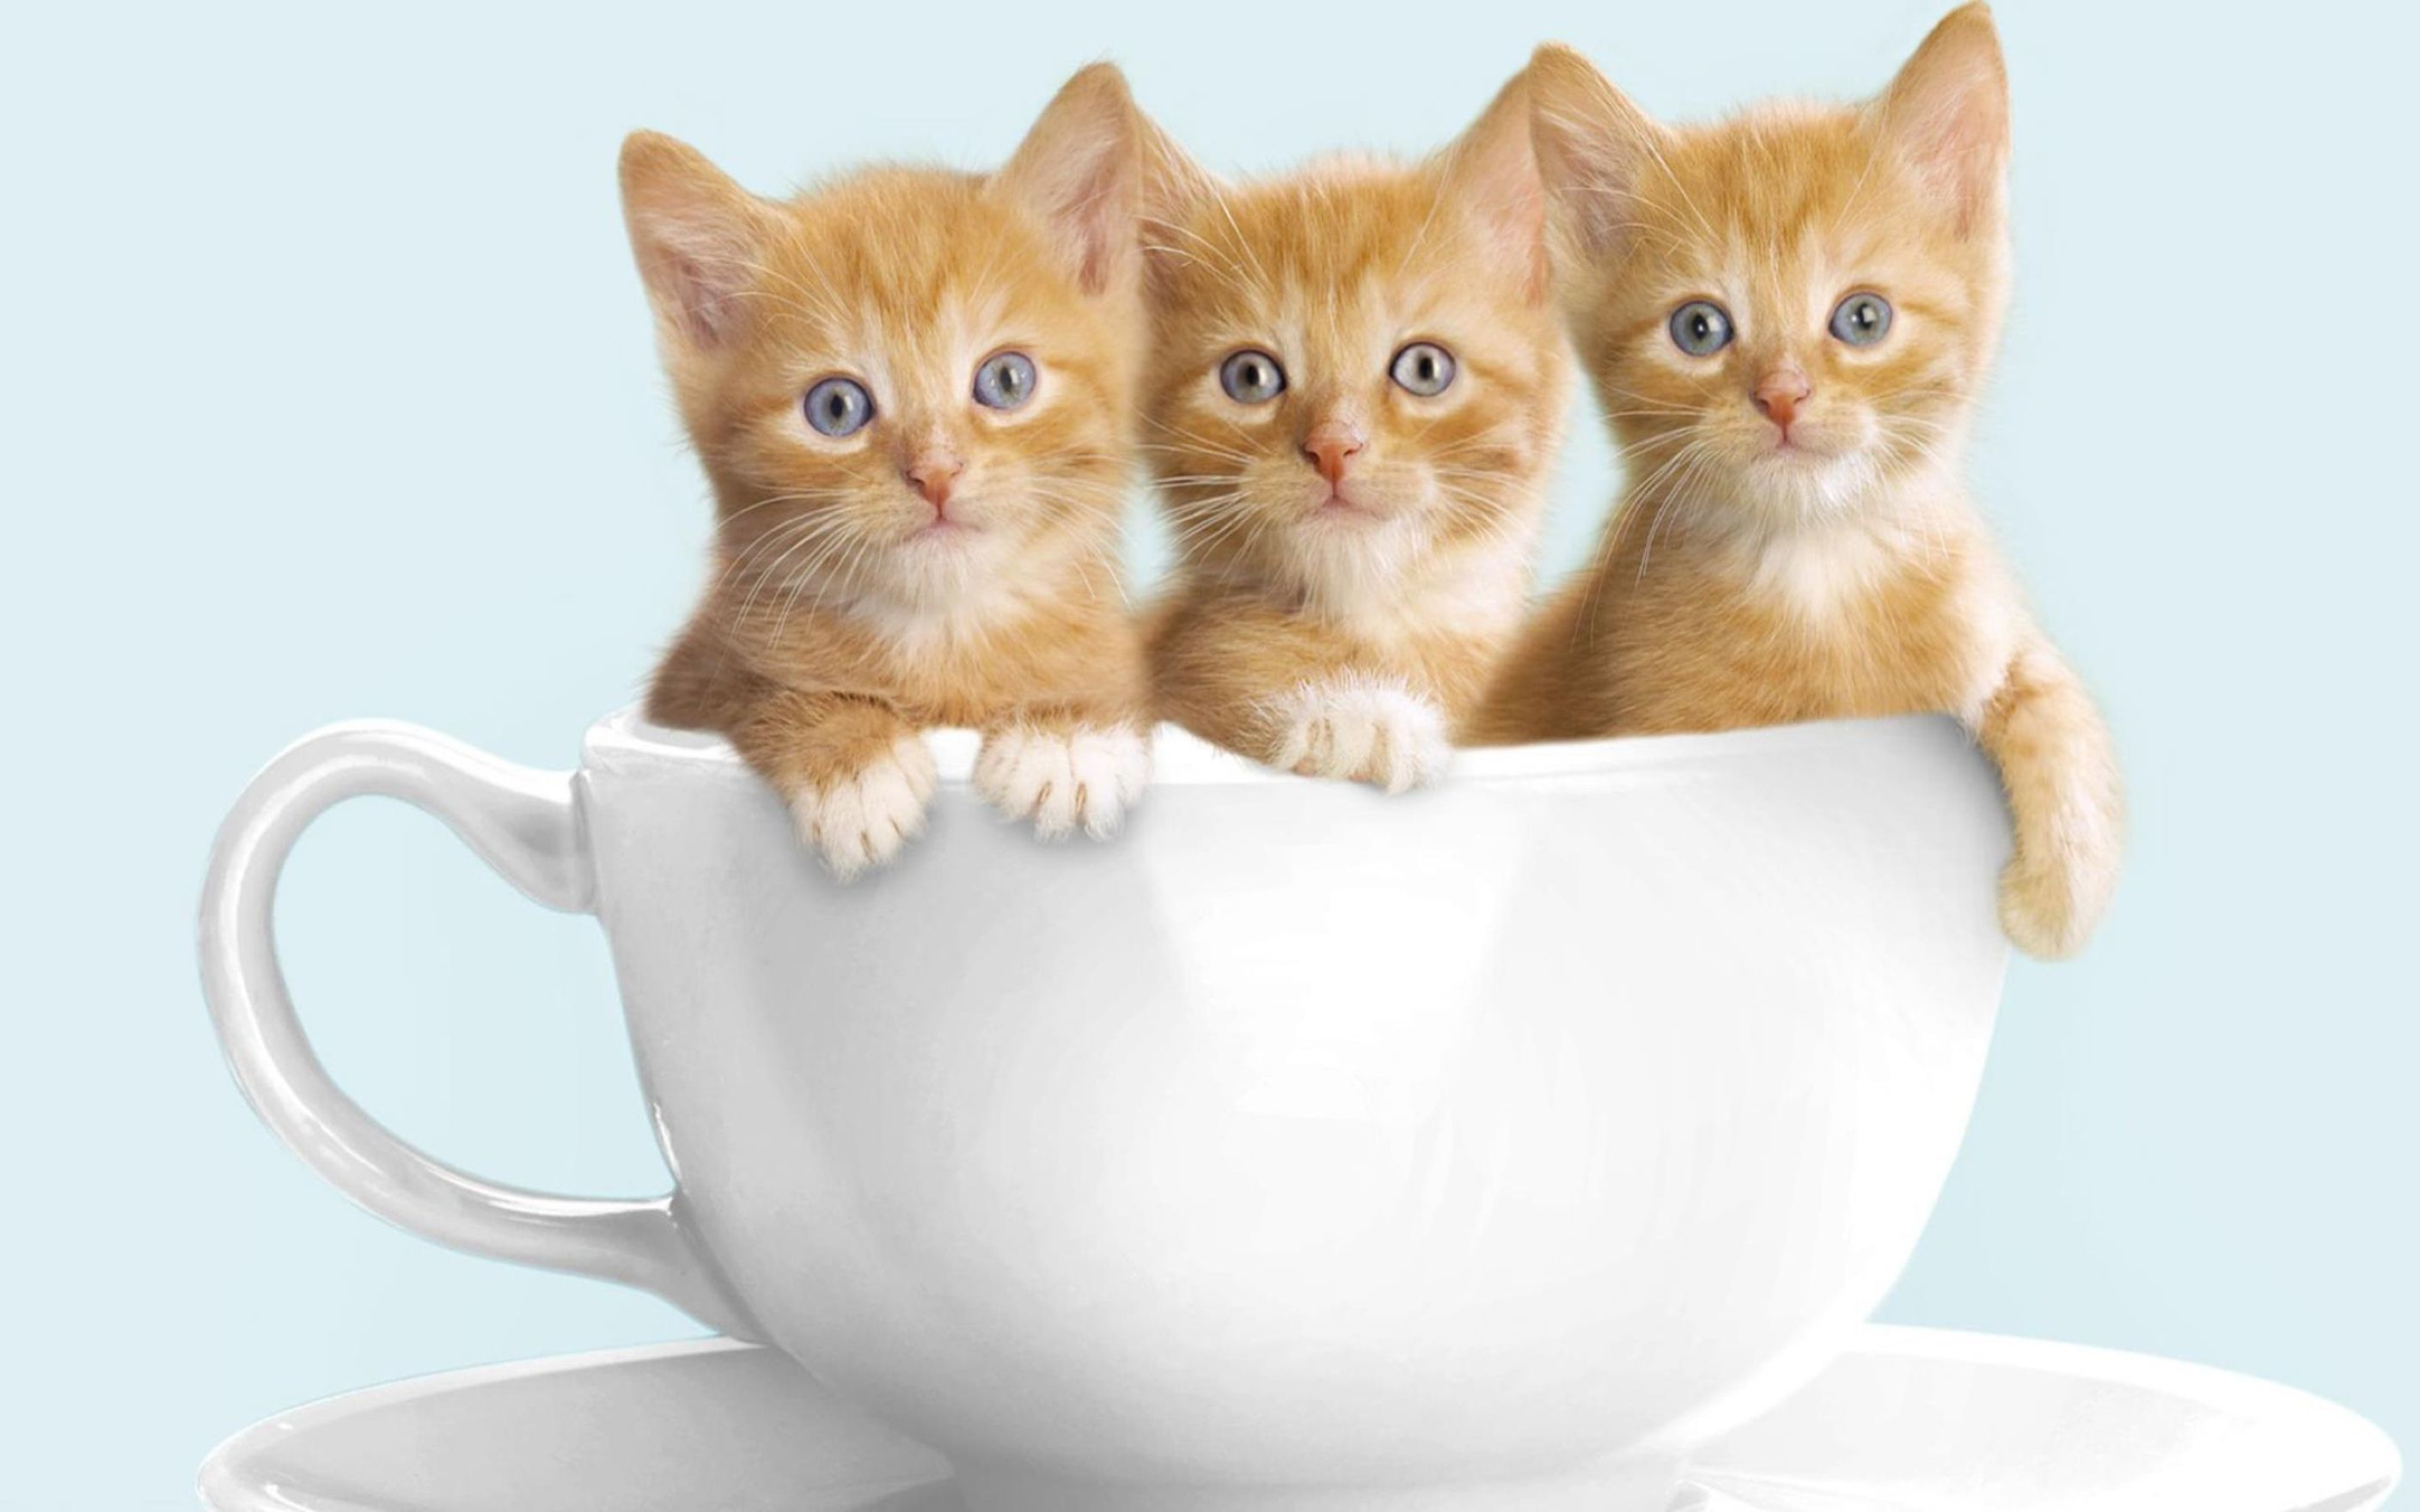 adorable cute cats high definition wallpaper: desktop hd wallpaper